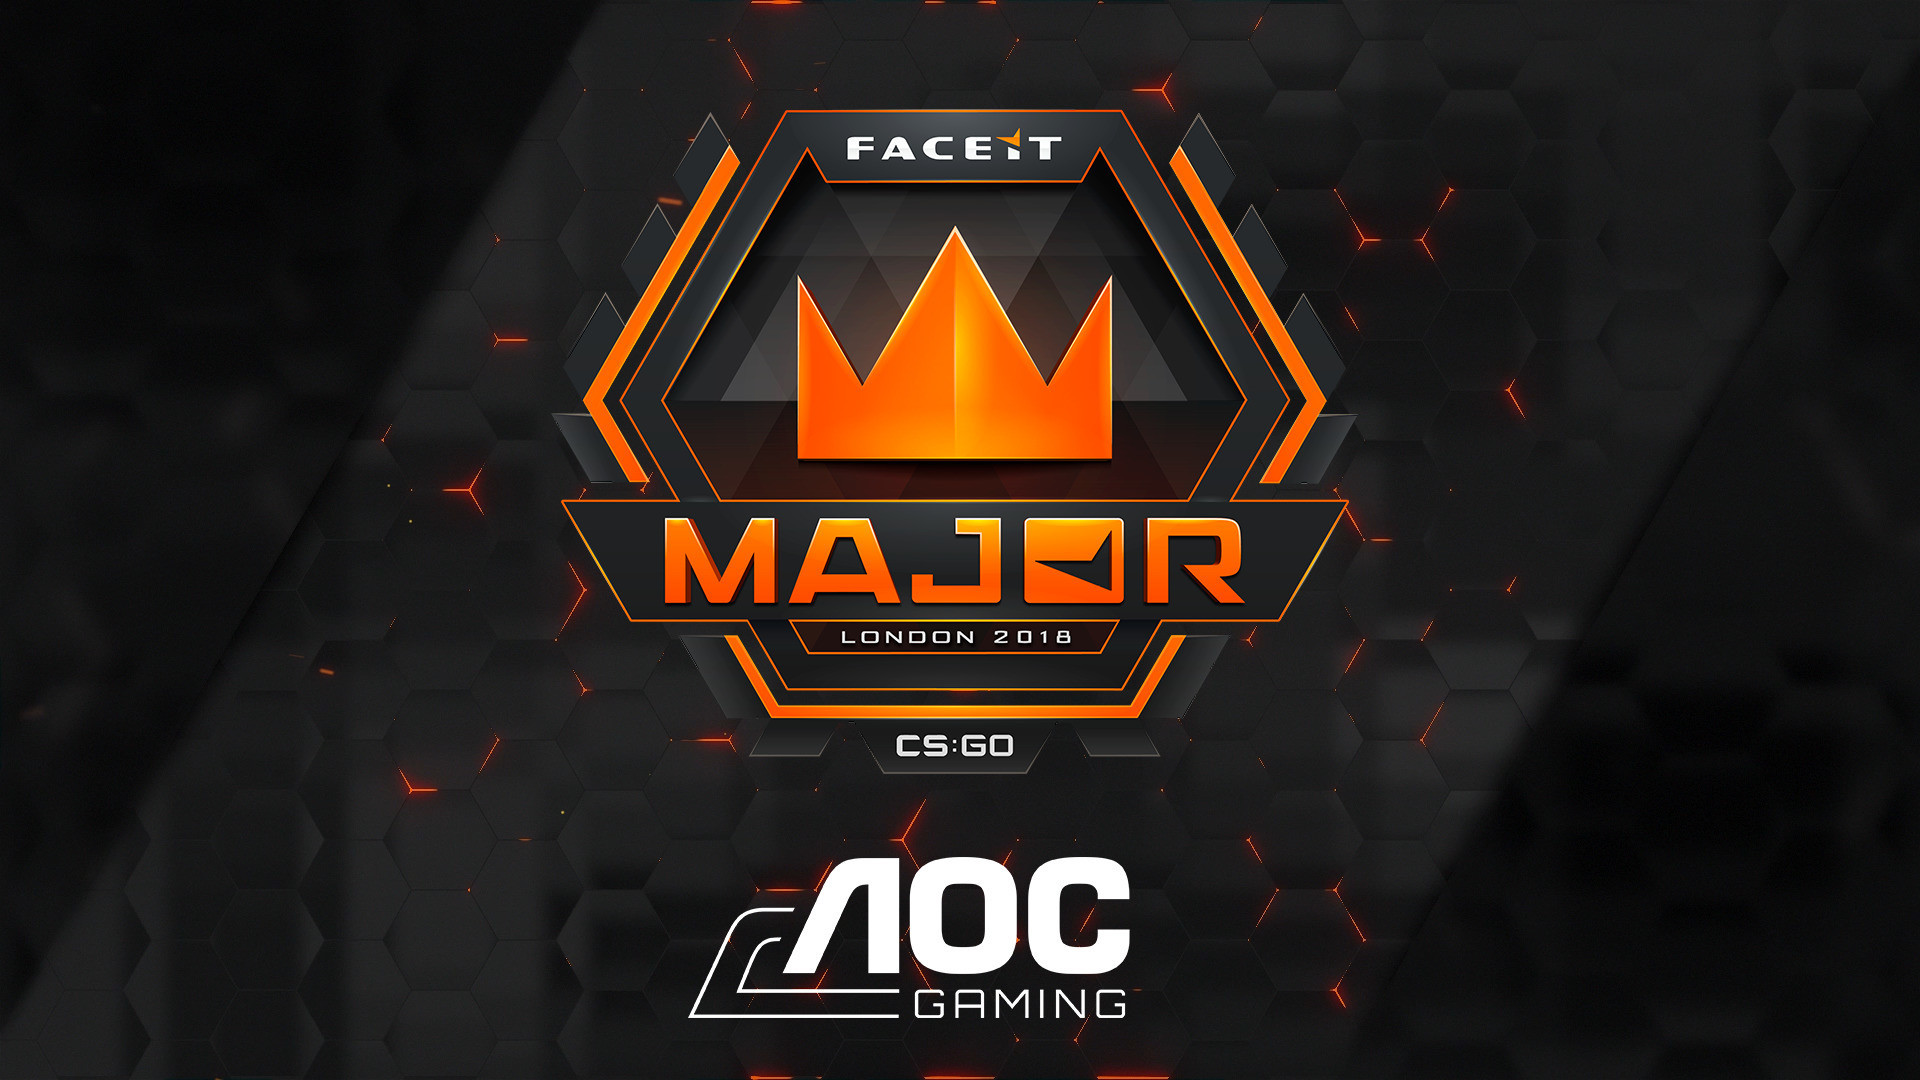 Faceit-major-2018-CSGO.jpg?mtime=20180913191728#asset:782957